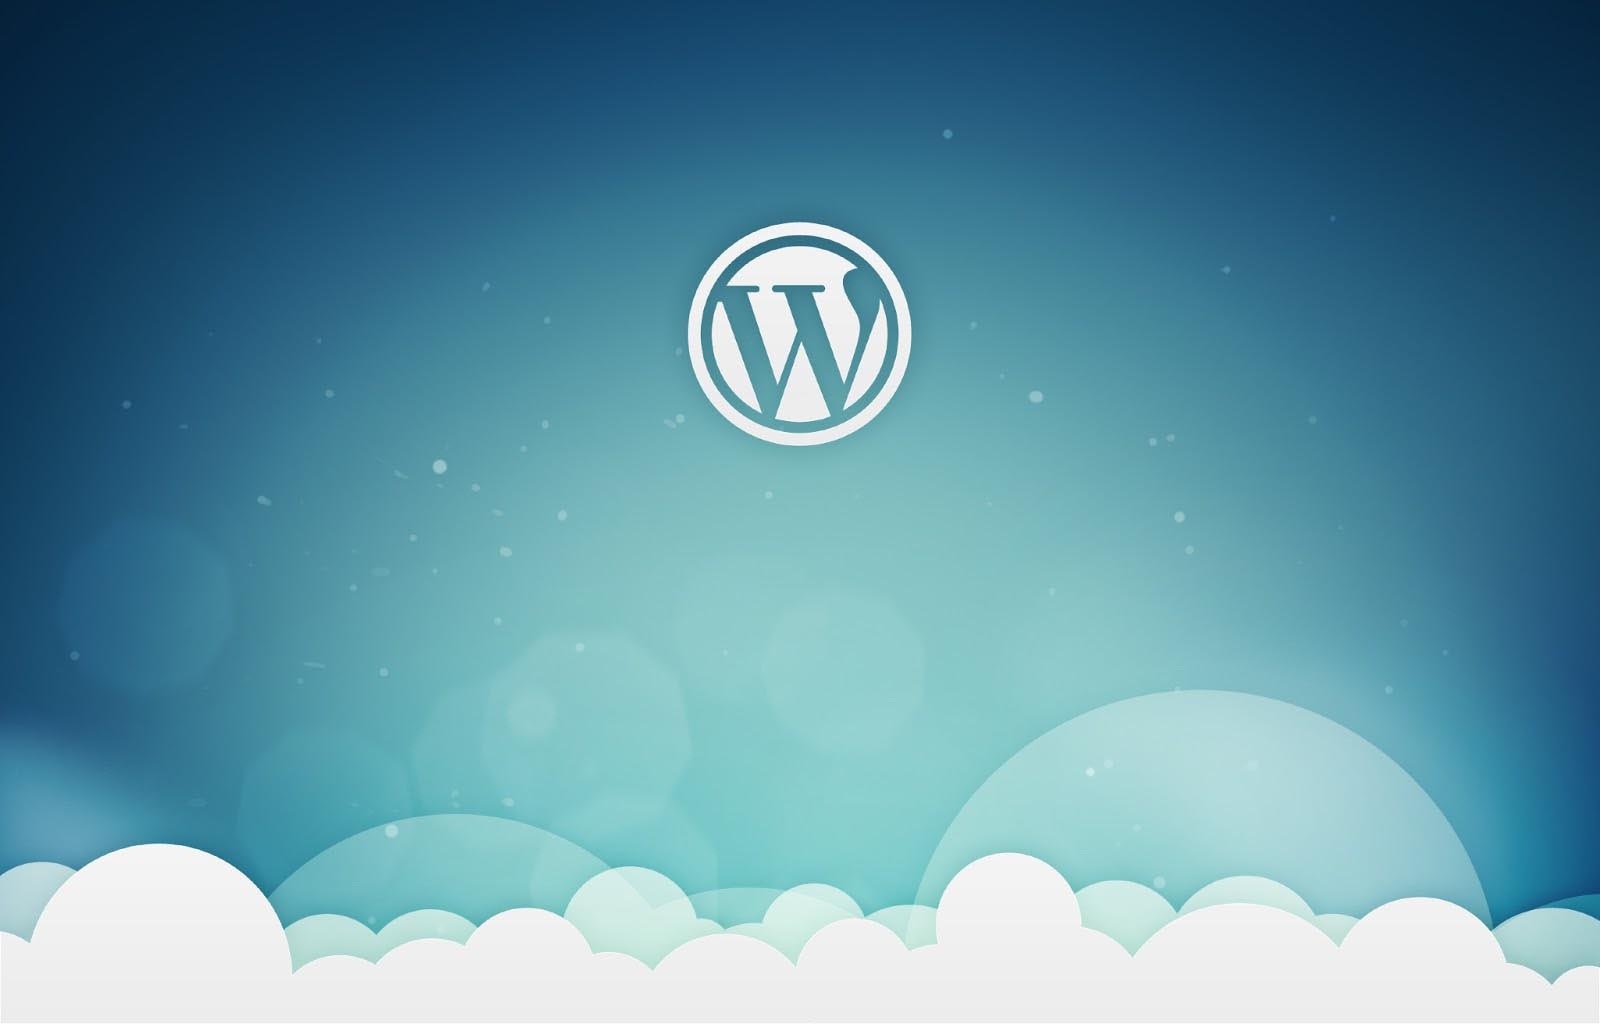 Getting Started with WordPress in Under 30 Minutes